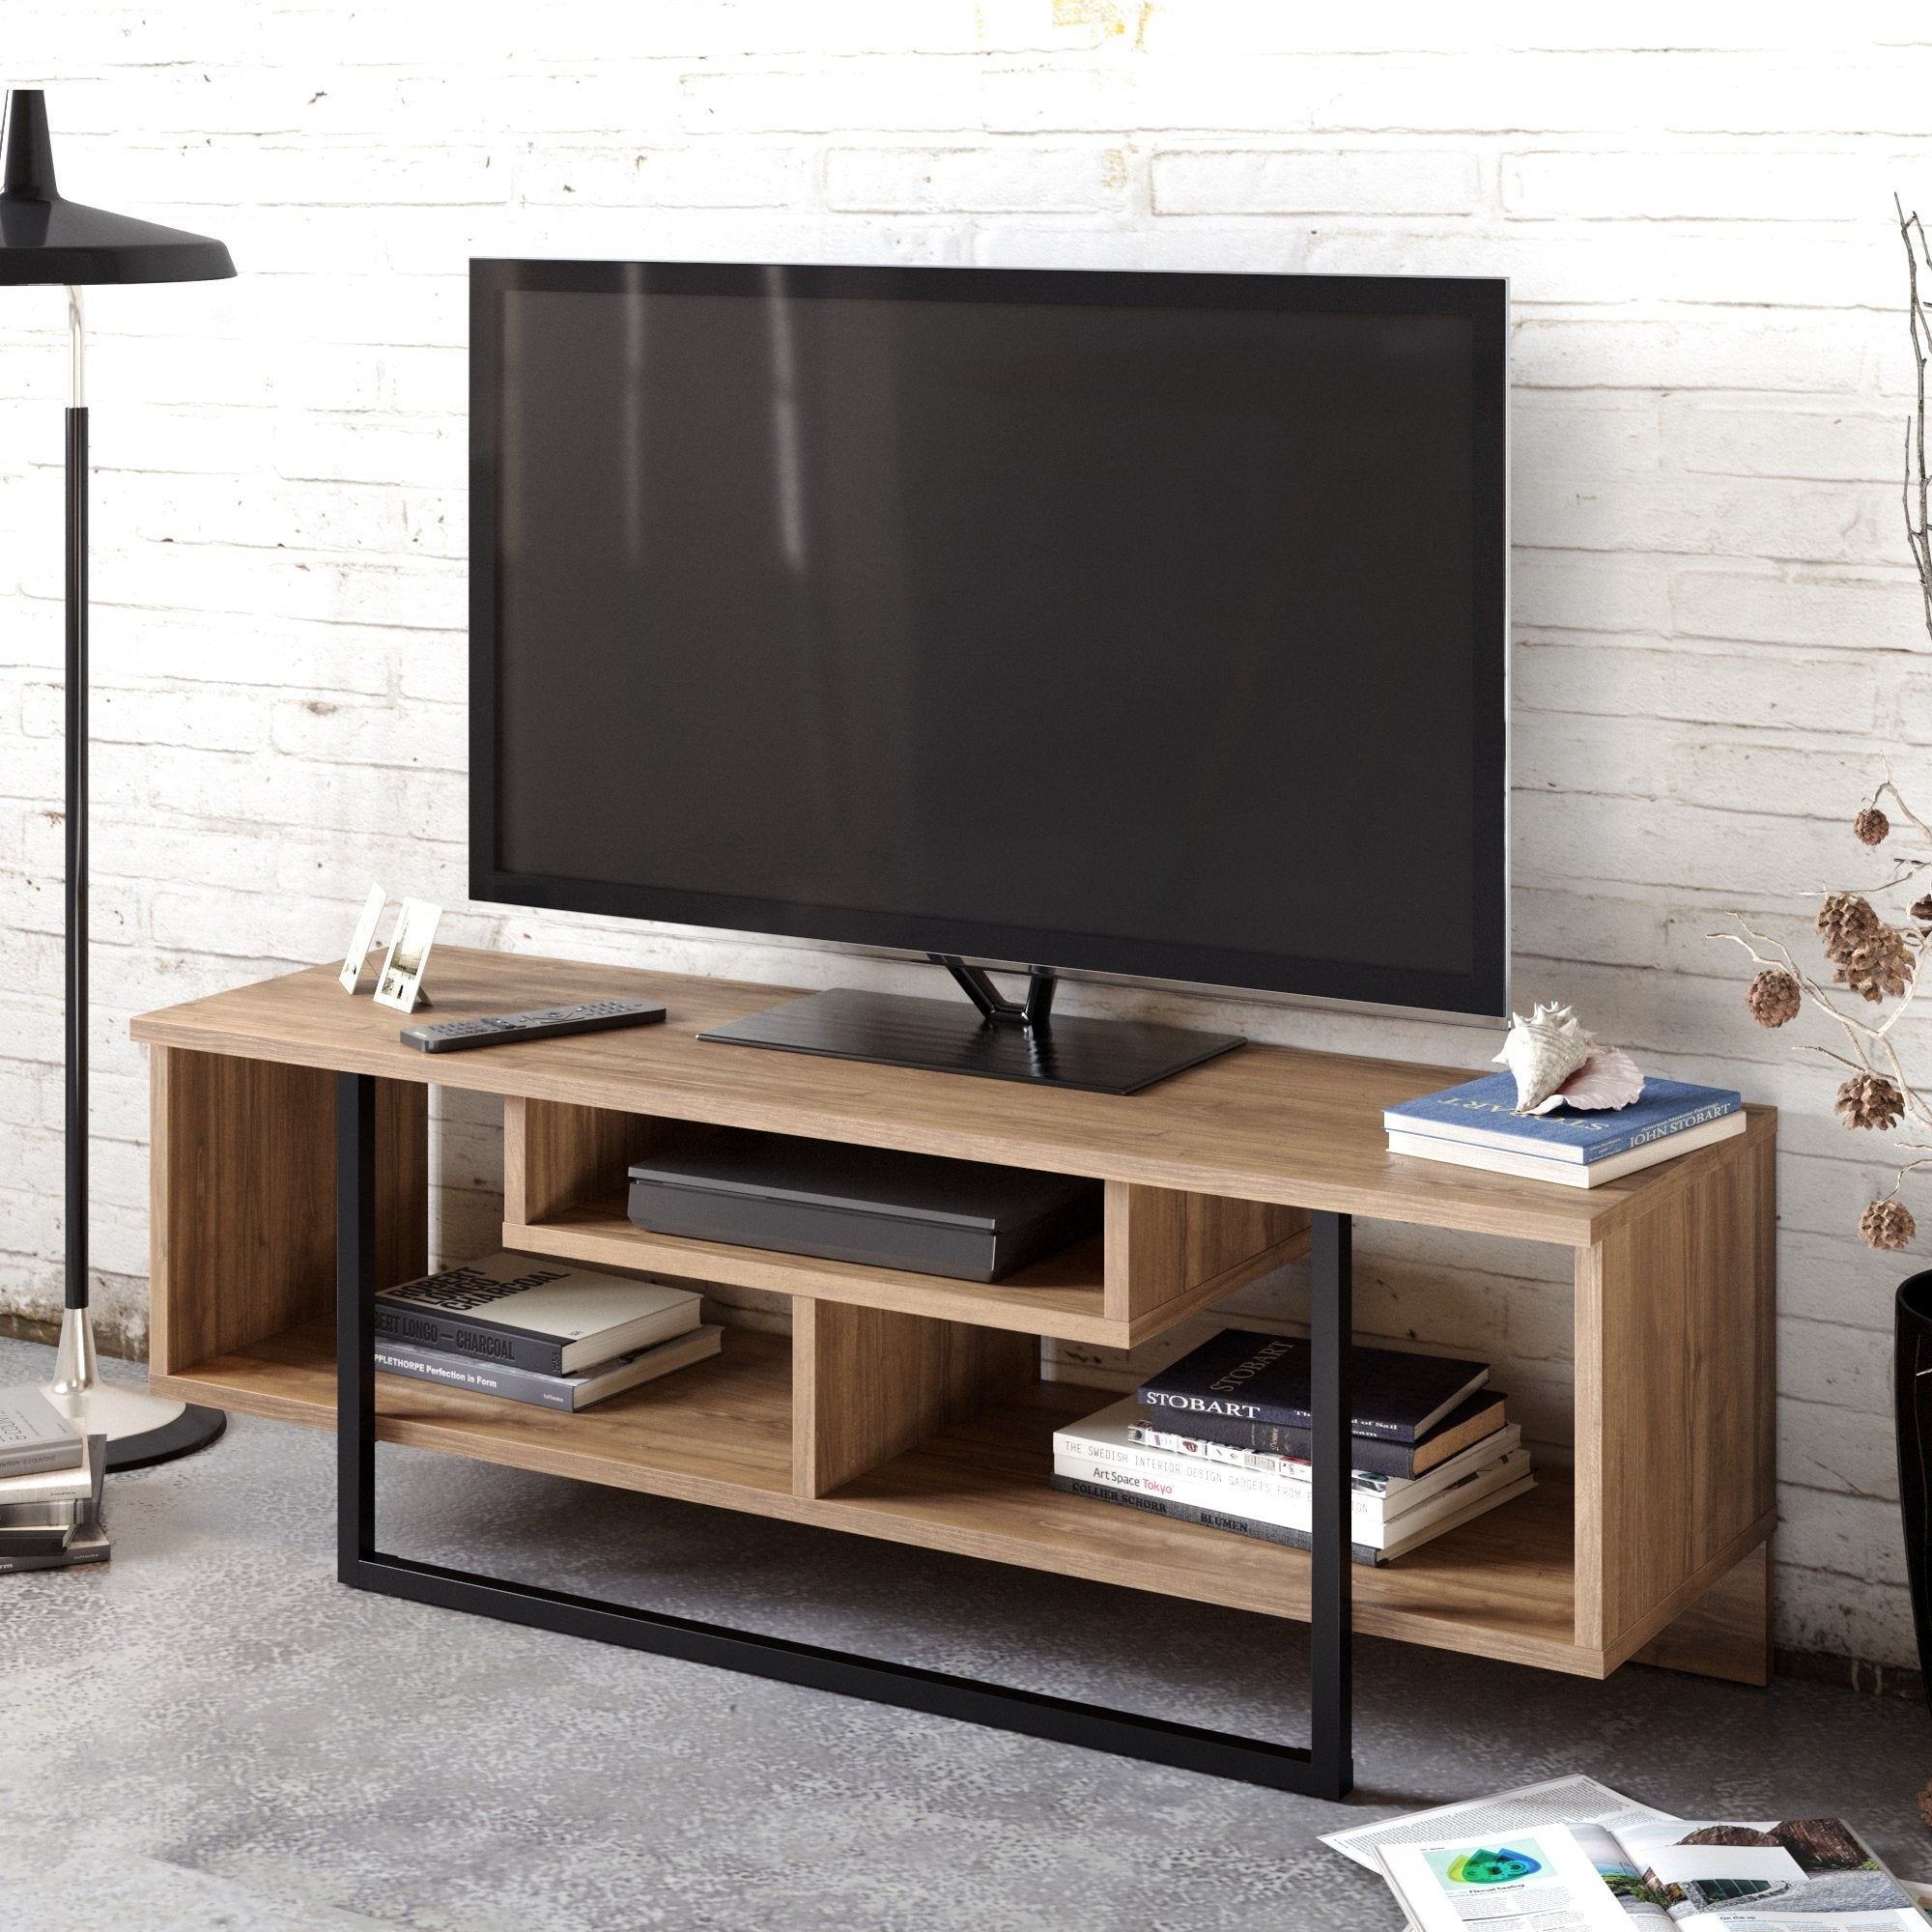 Asal 47'' Wide Metal Wood TV Stand & Media Console for TVs up to 55